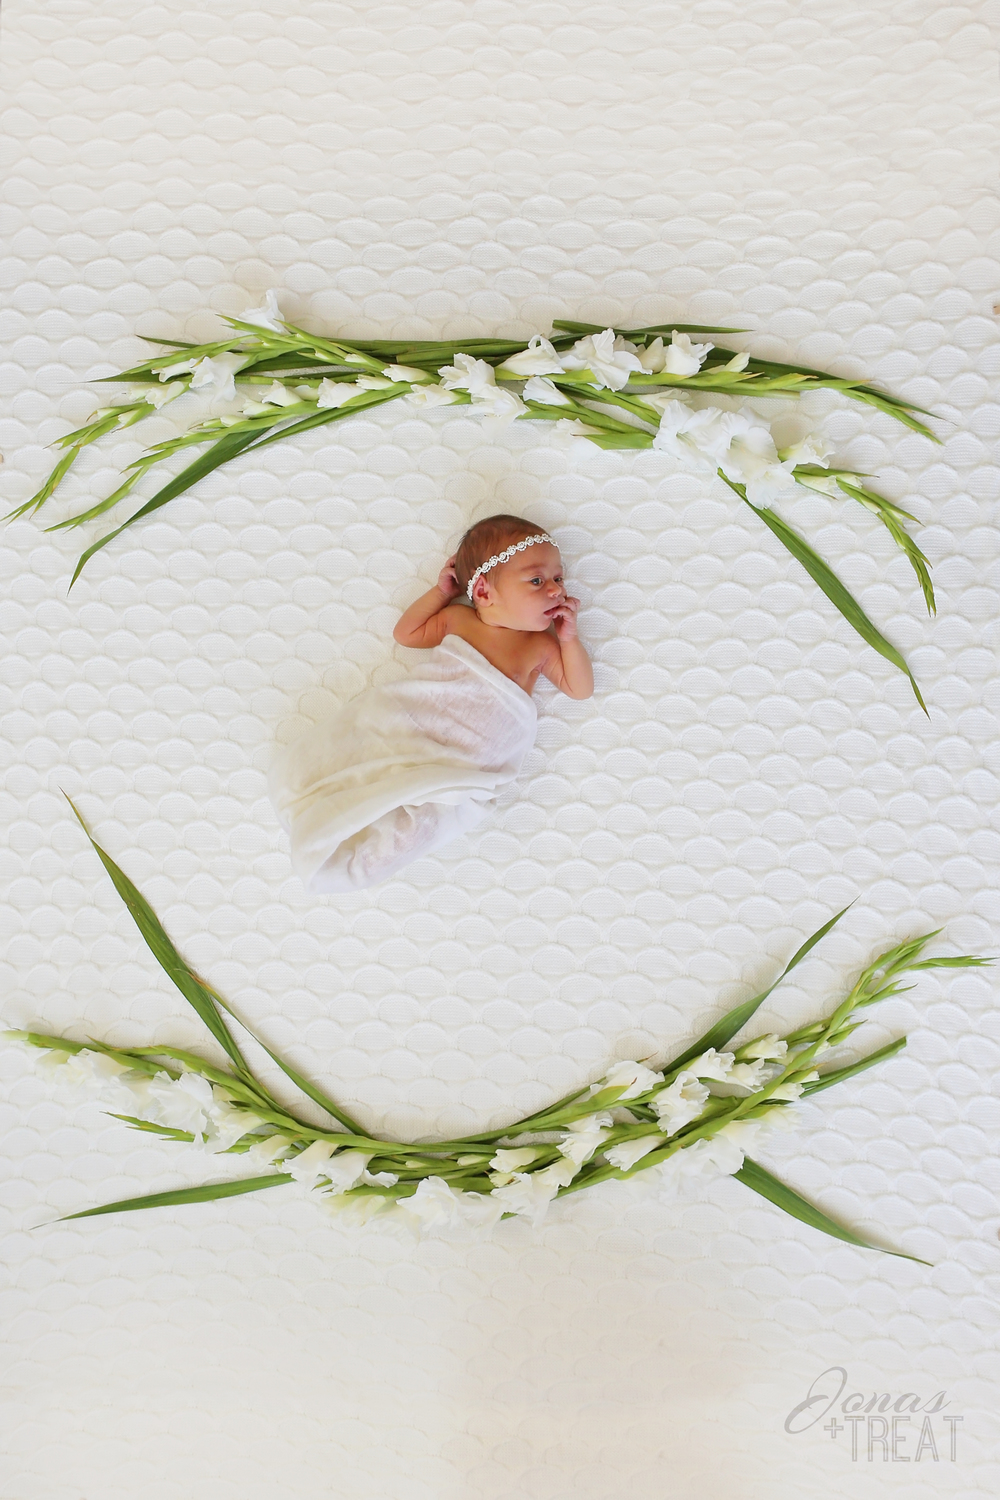 This summer it's blooming babies! Phoenix newborn photography with real flowers. Newborn sessions with real flowers. Newborn with fresh white flowers.